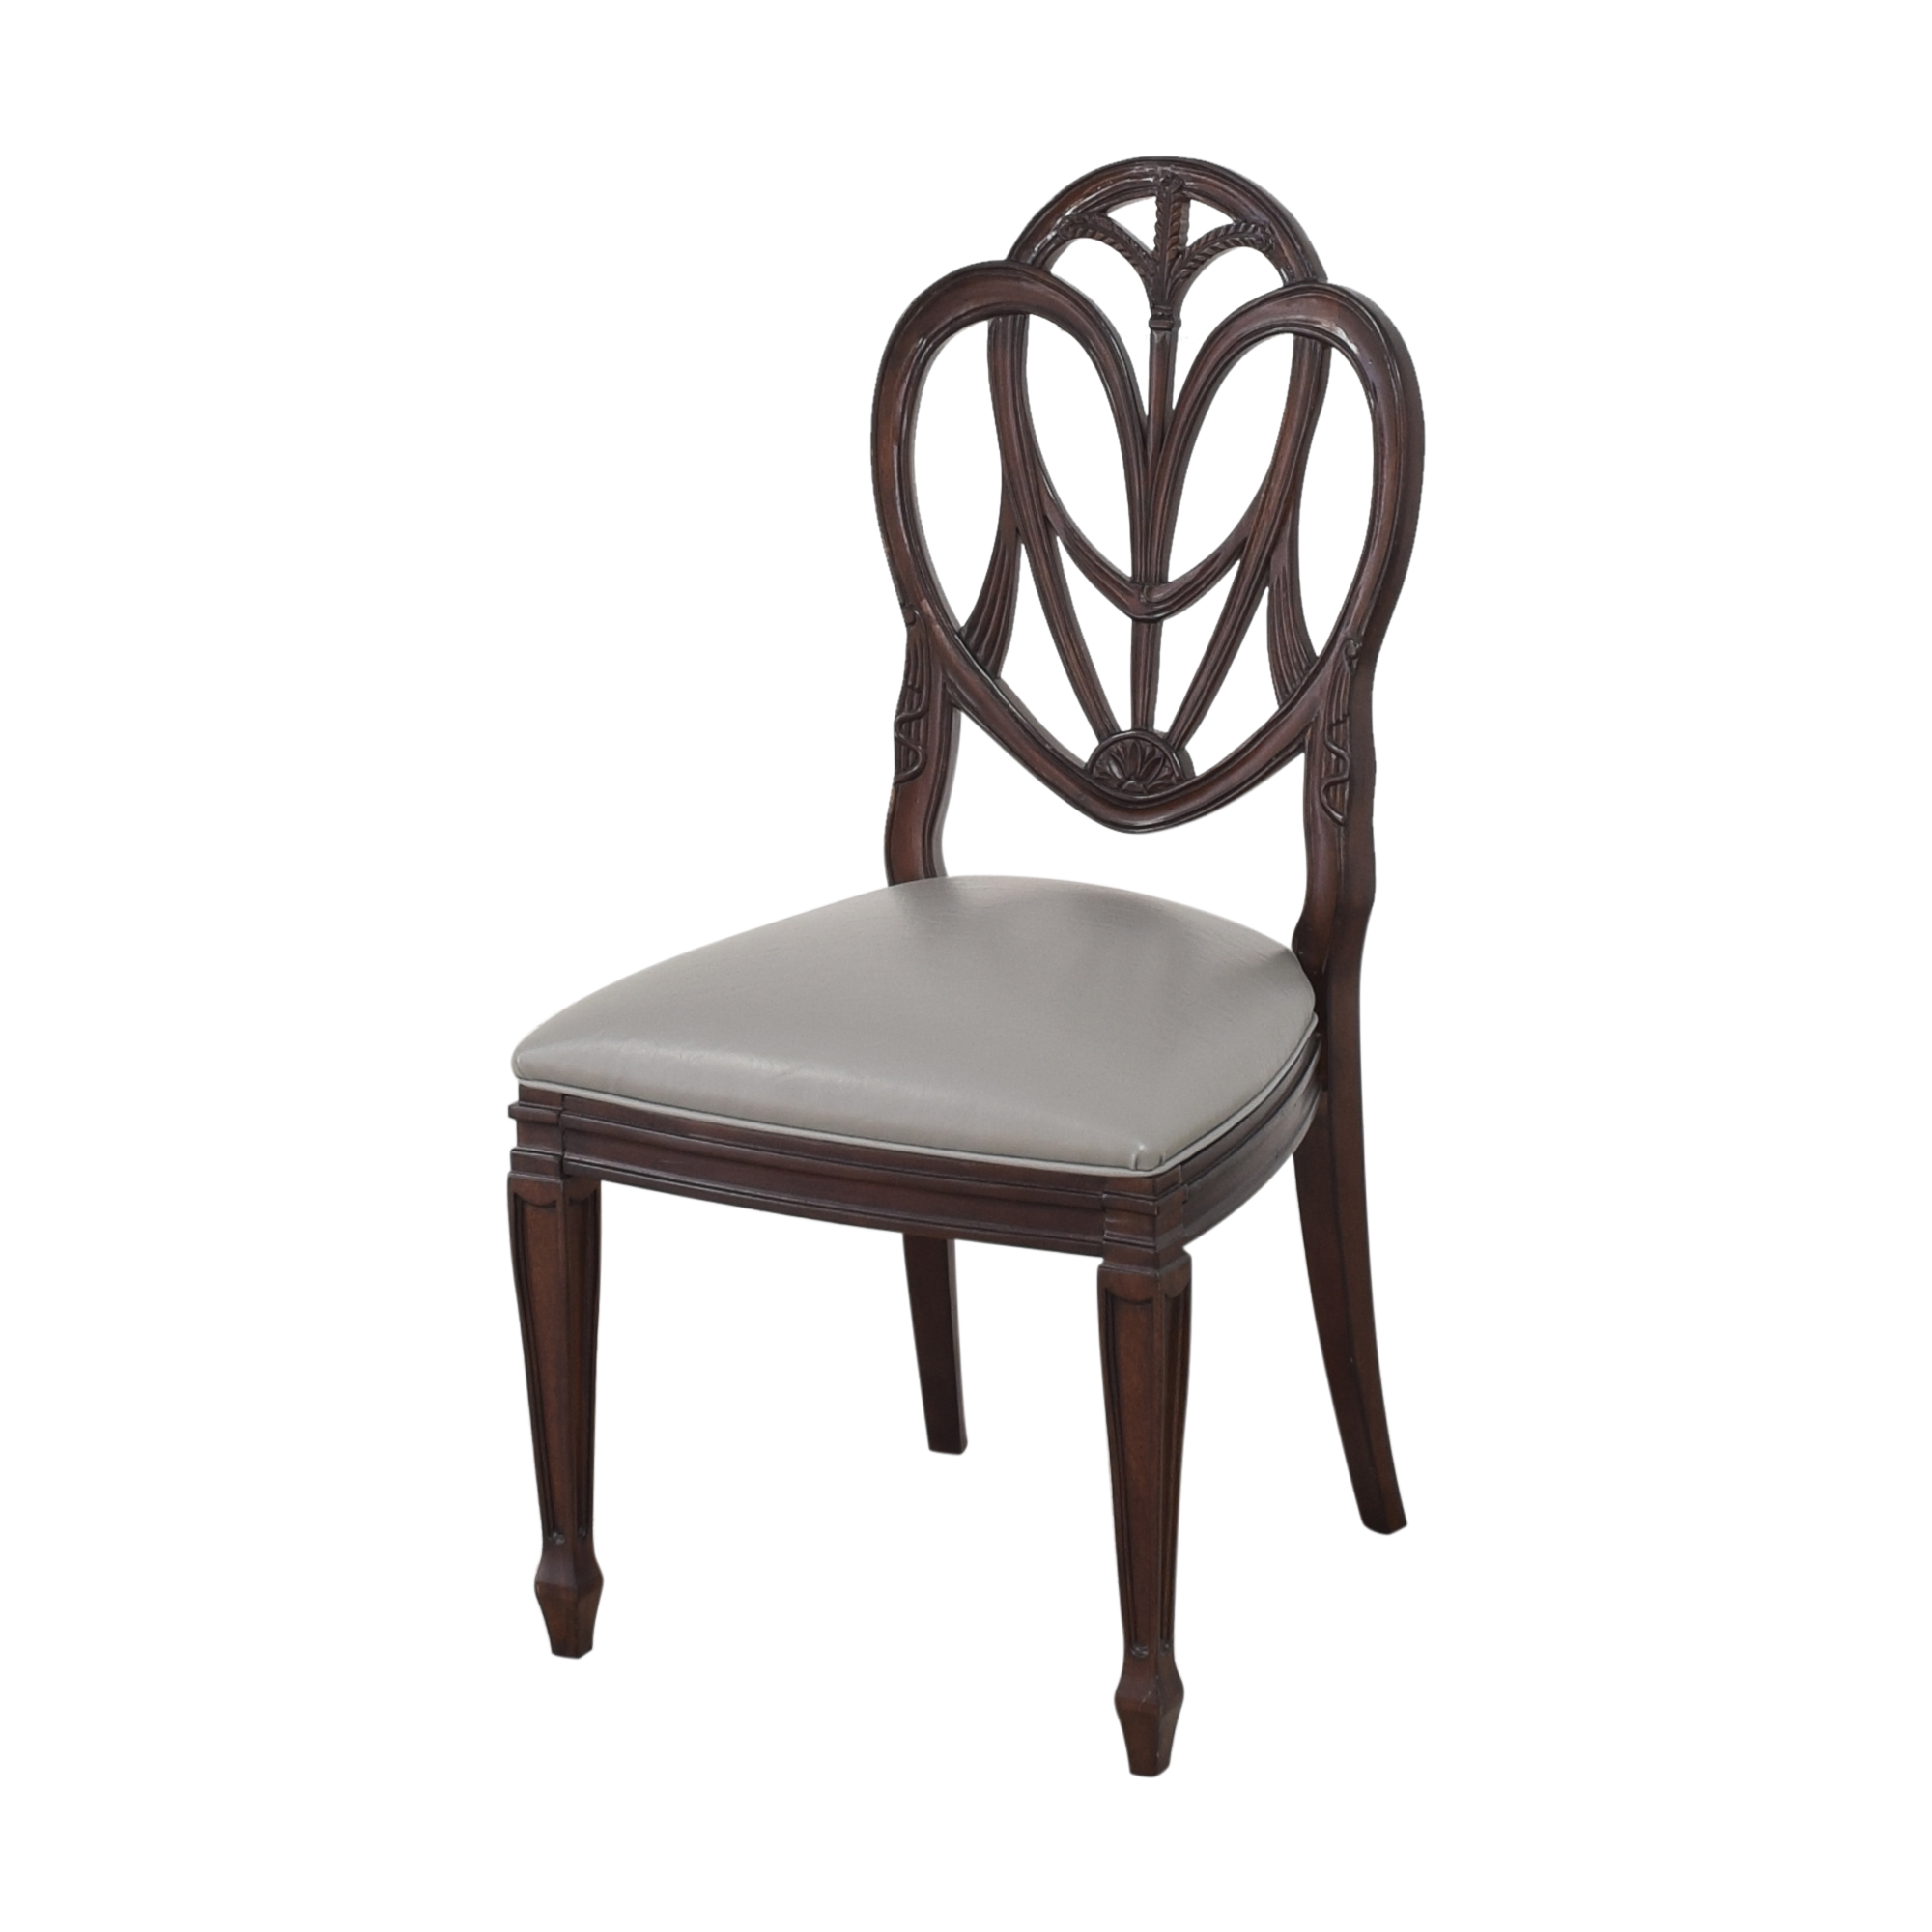 shop Drexel Heritage Drexel Heritage British Accents Dining Chairs online